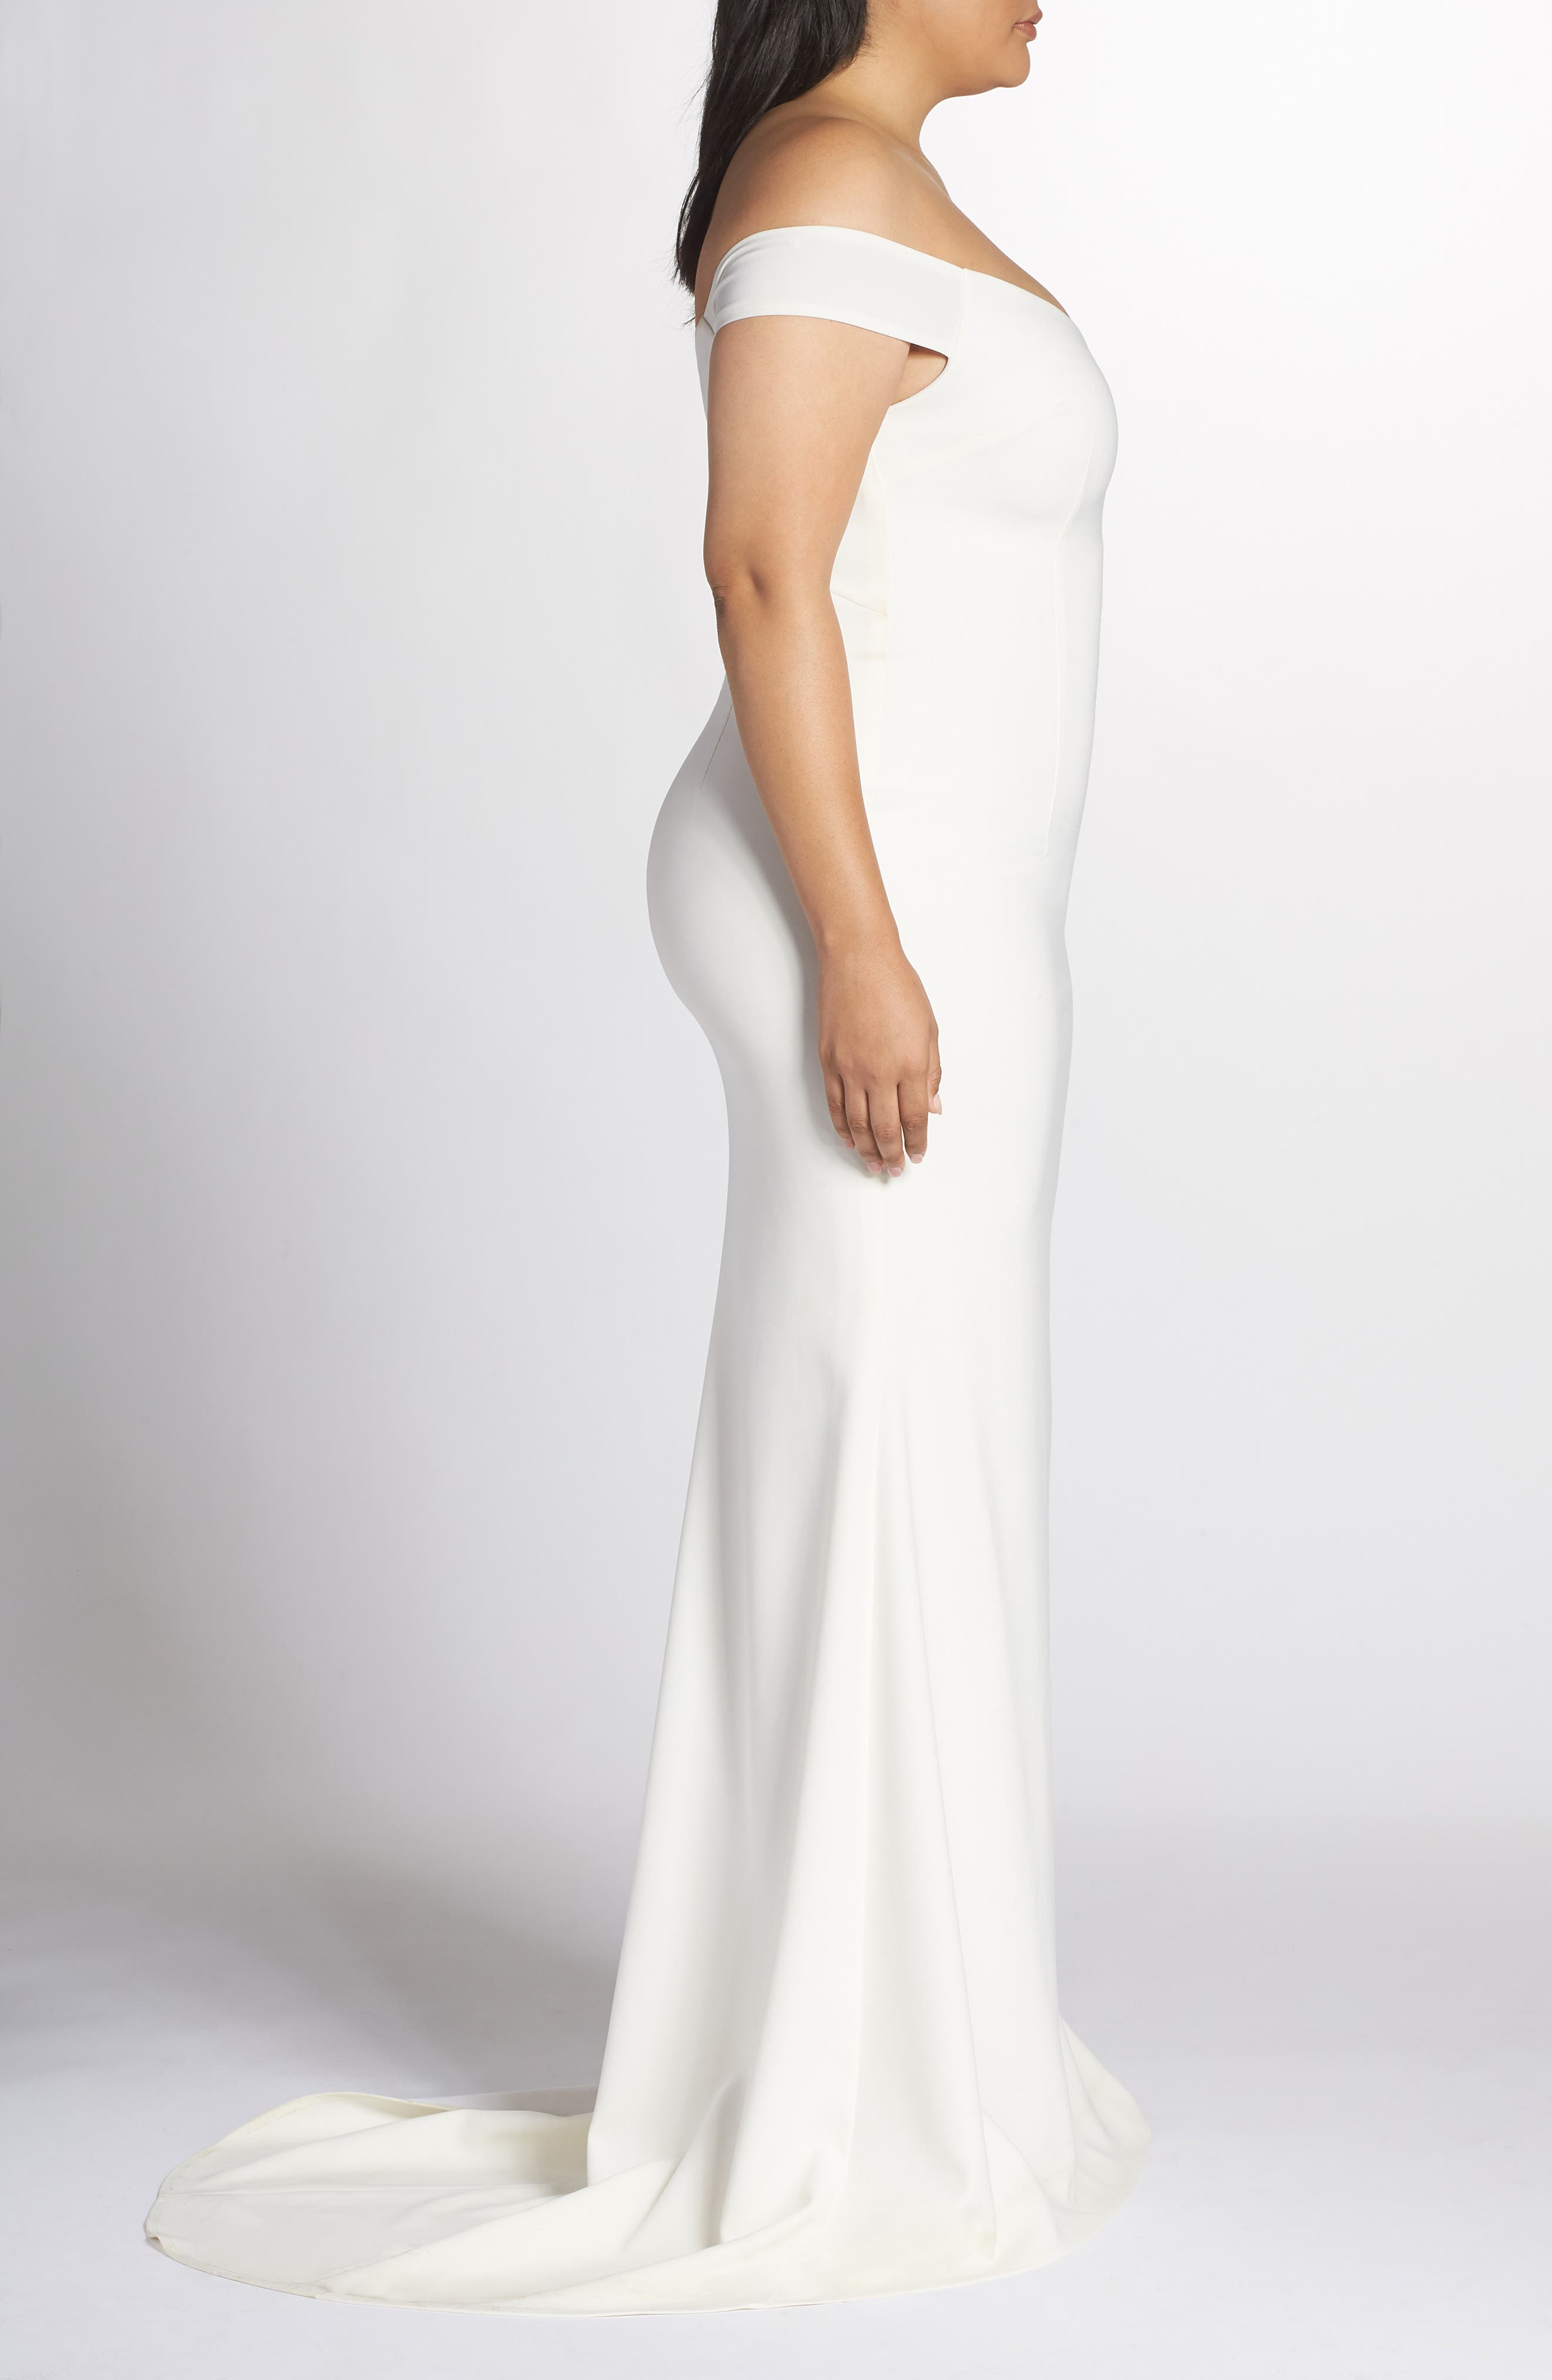 NOEL AND JEAN BY KATIE MAY,                             Alpha Off the Shoulder Dress,                             Alternate thumbnail 3, color,                             IVORY